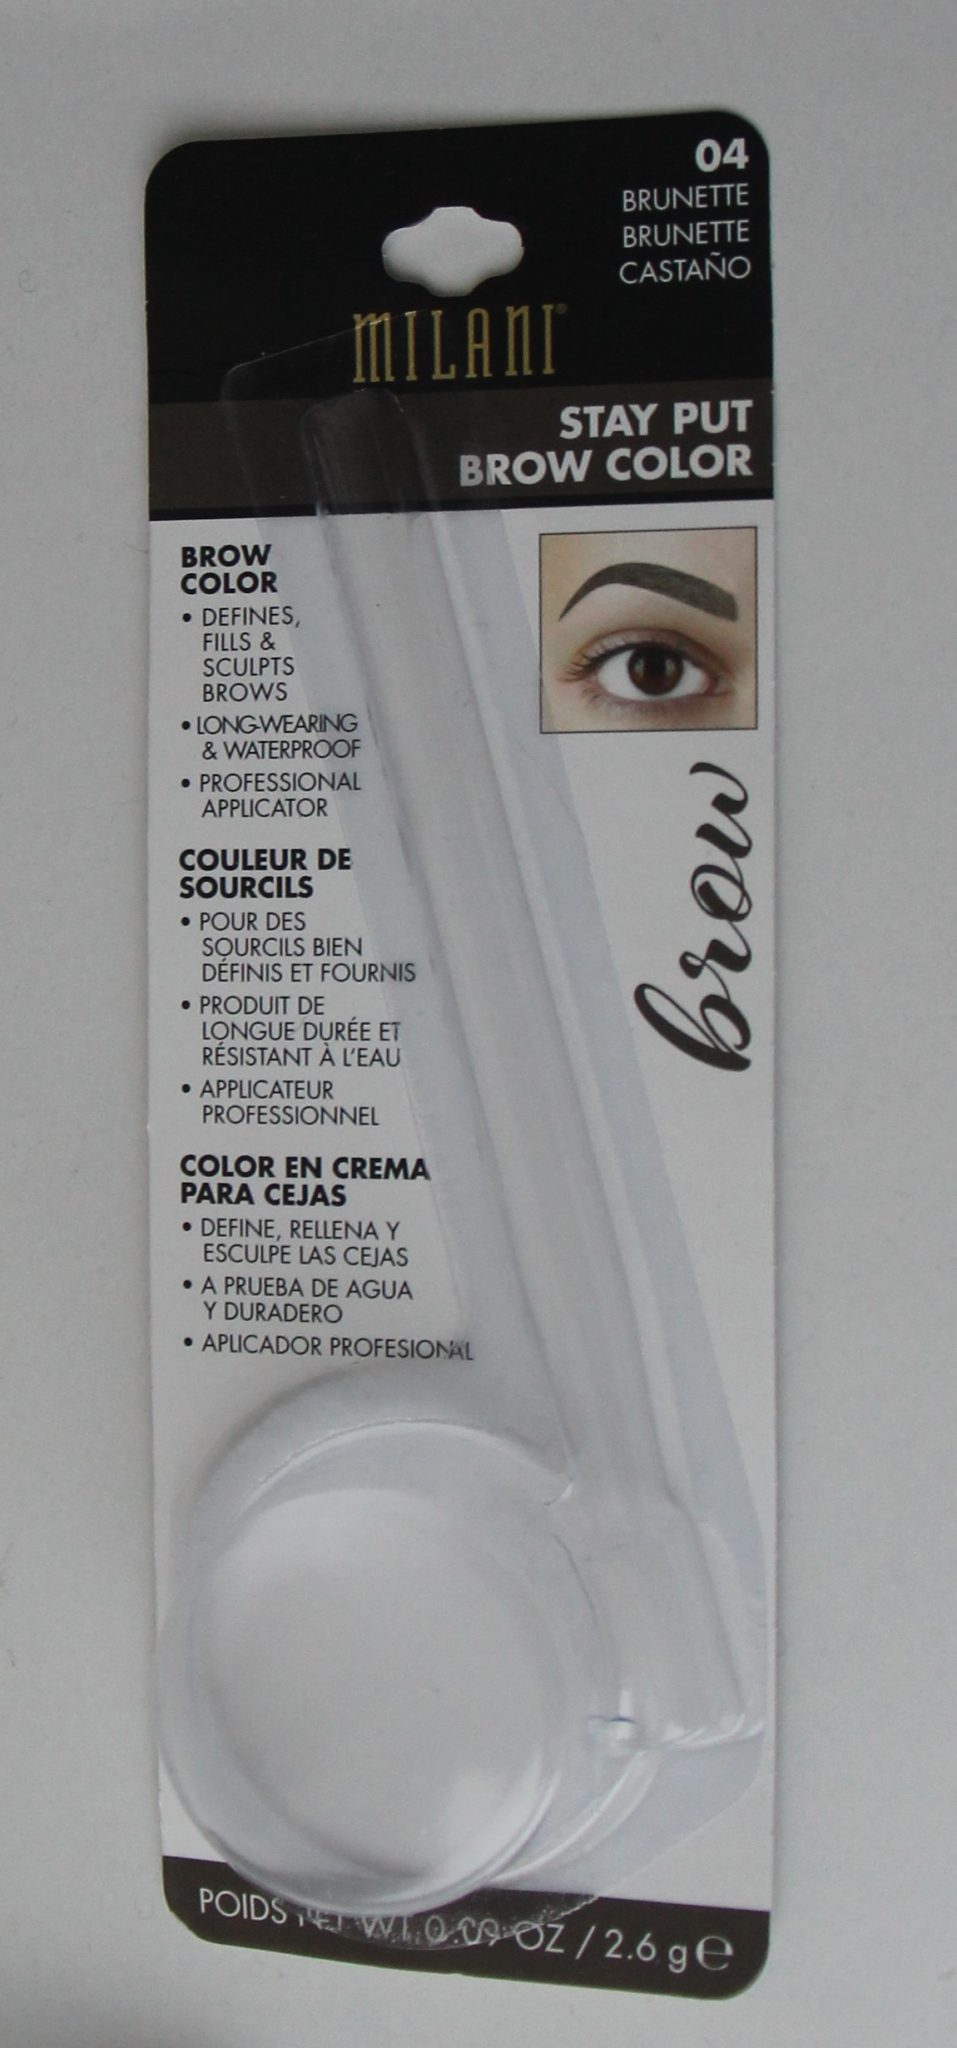 MILANI STAY PUT BROW COLOR gel à sourcils n°4 DisMoiCéline 3